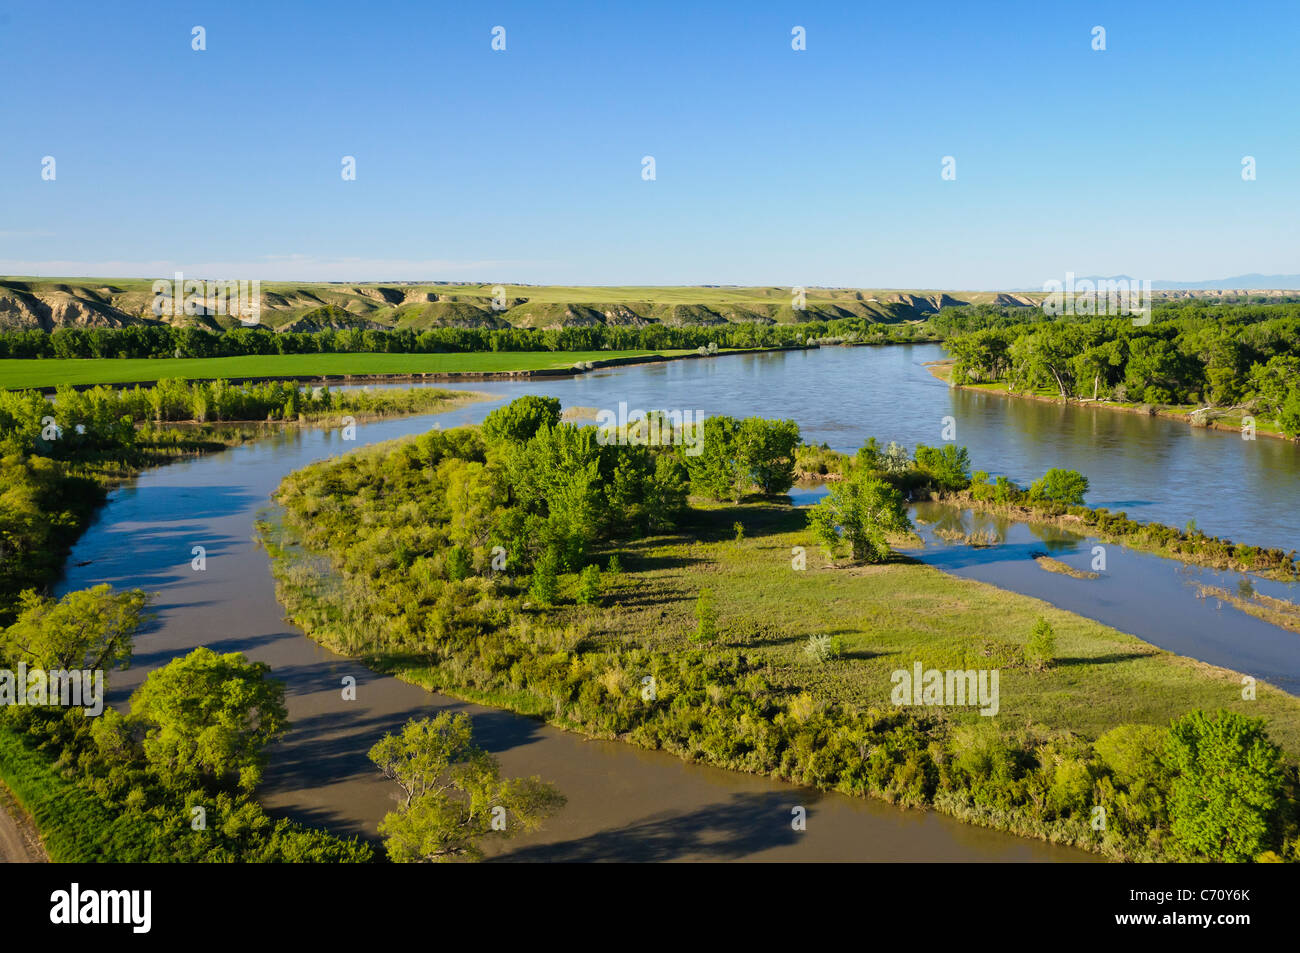 Decision Point overlook at the confluence of the Missouri and Marias Rivers, Montana. - Stock Image